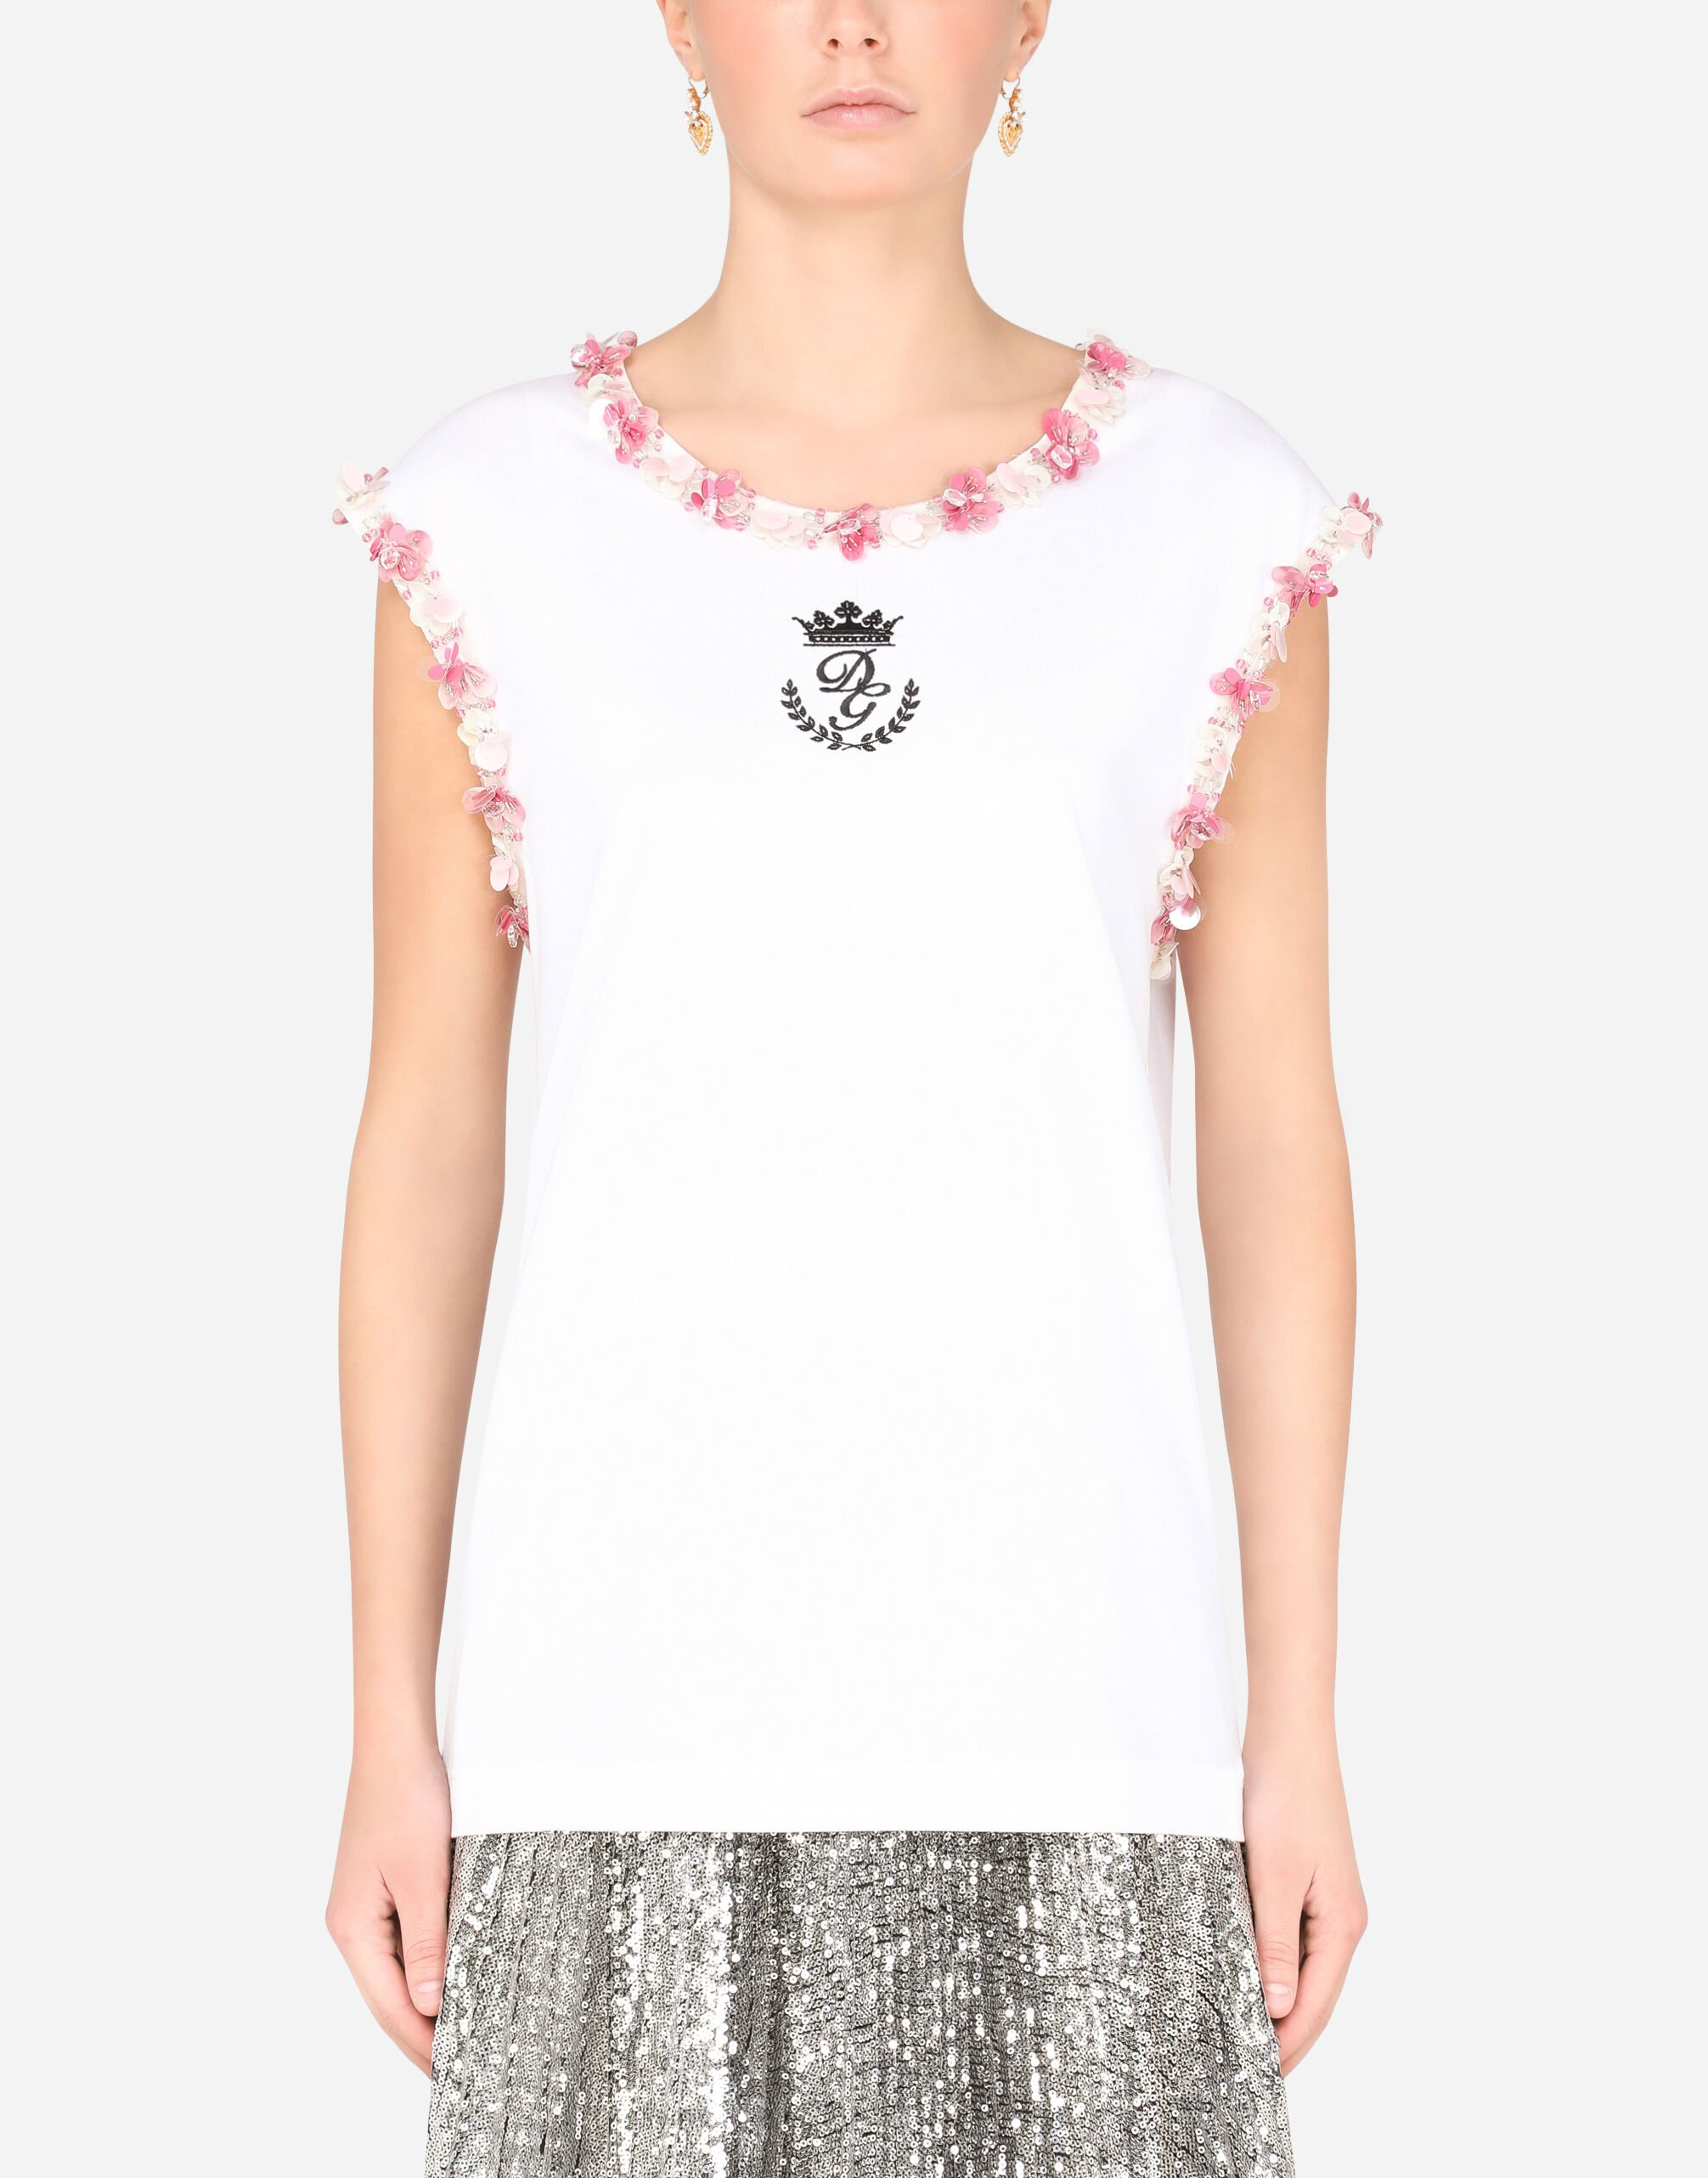 T-shirt in jersey con ricami